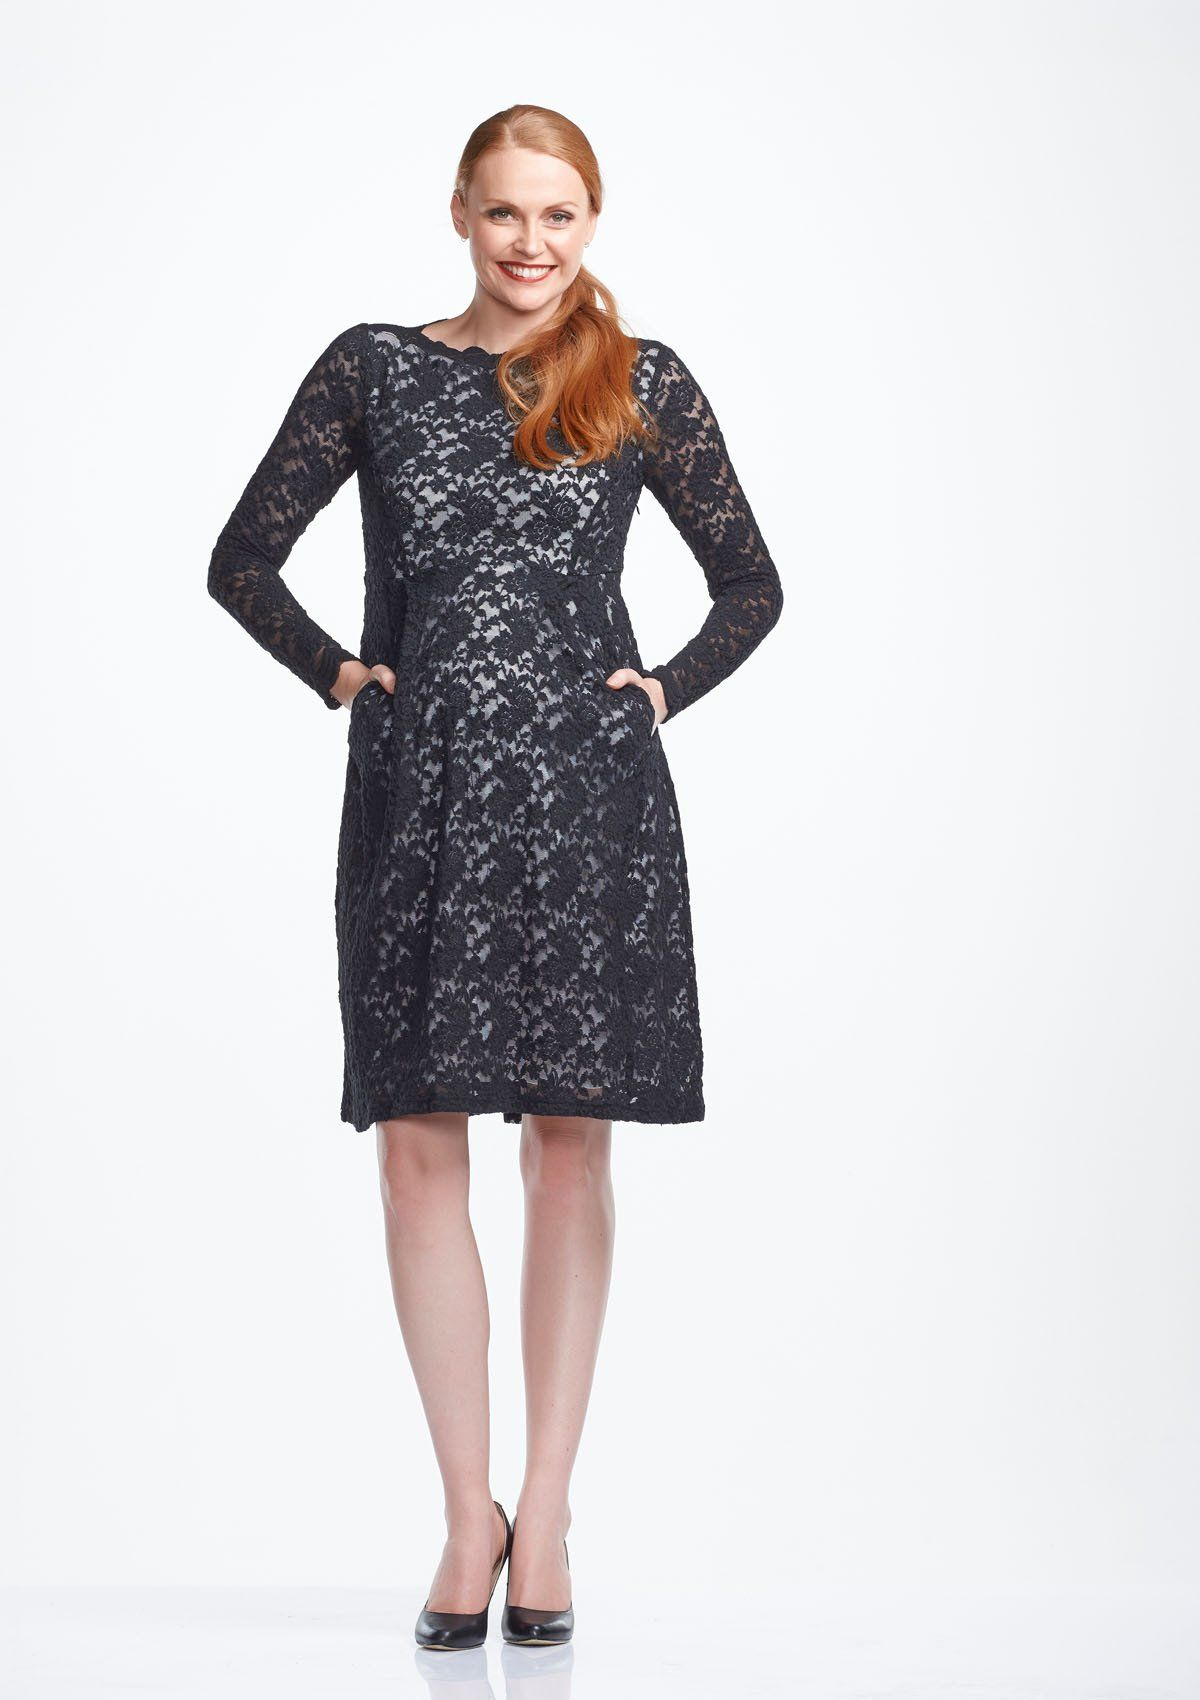 Style recommendations for pregnant women u maternity dresses new